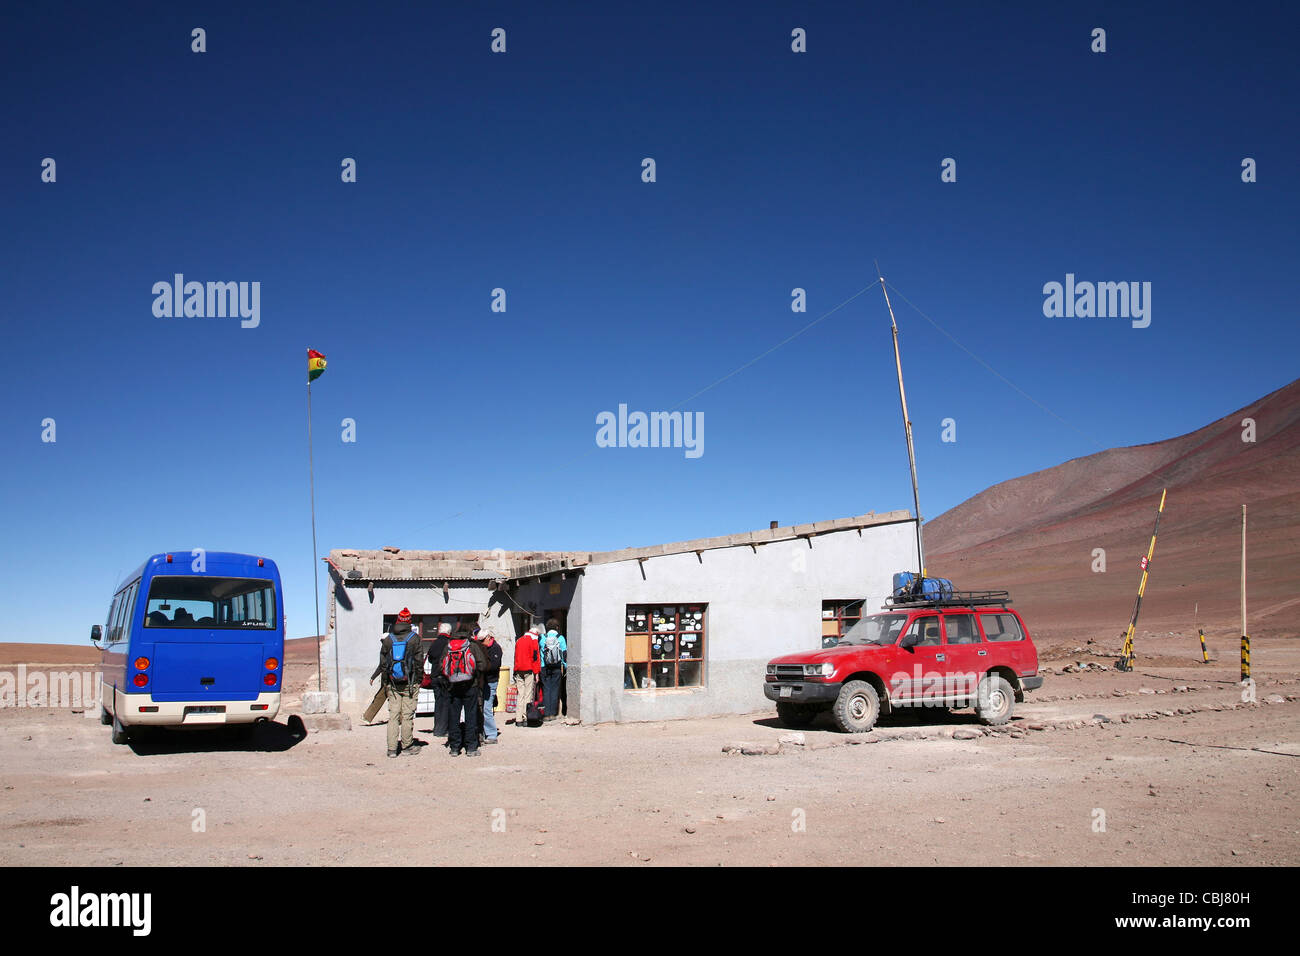 Four-wheel drive vehicles and tourists at official border post between Chile and Bolivia - Stock Image